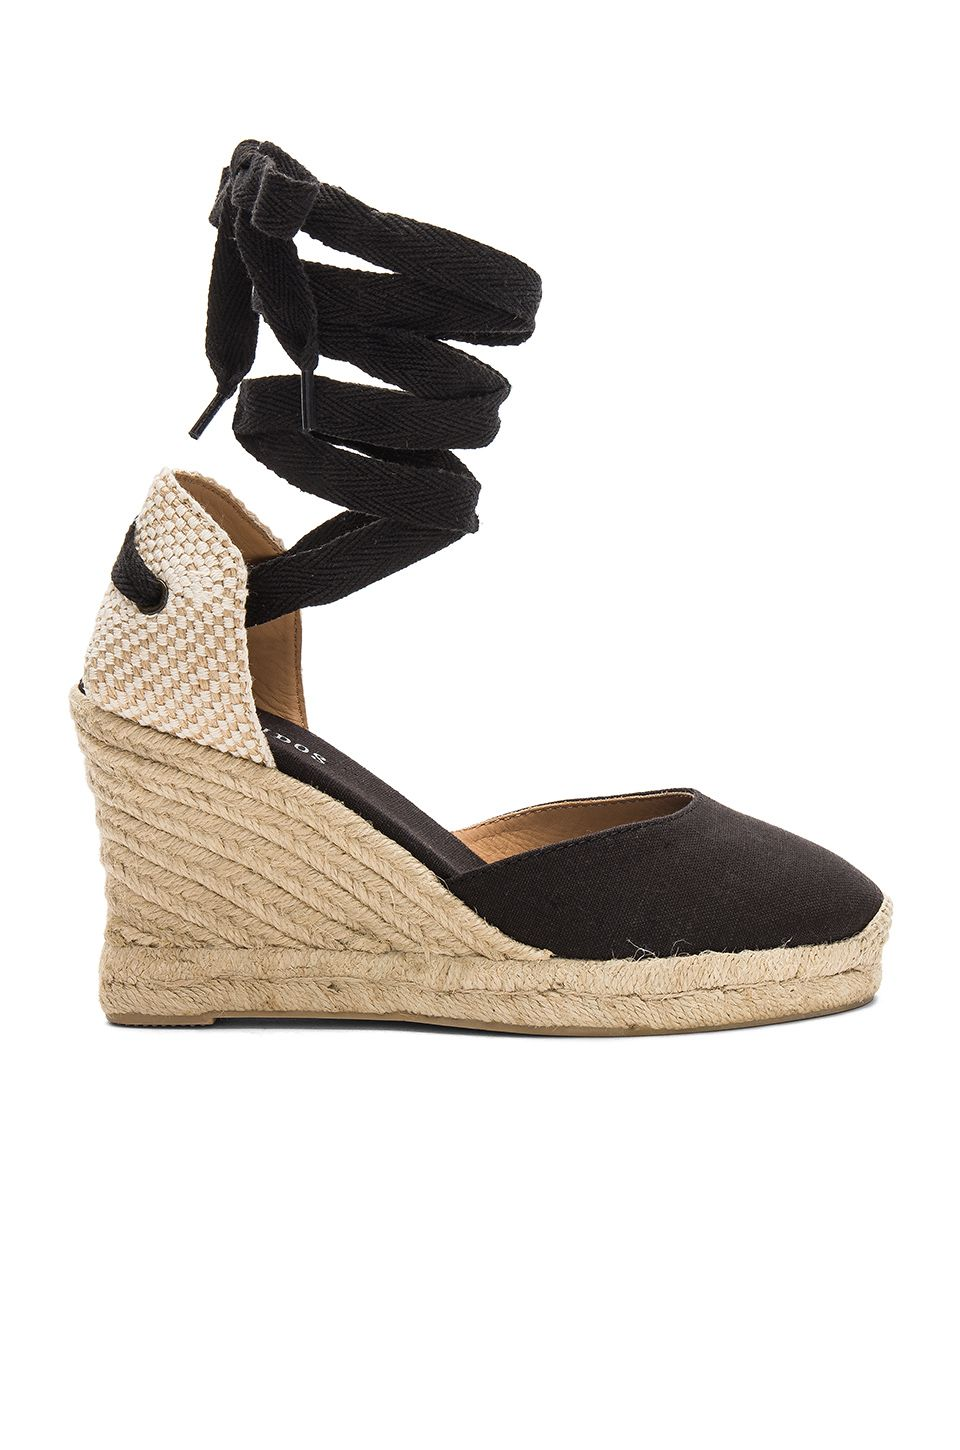 5c88db9758a SOLUDOS TALL WEDGE.  soludos  shoes